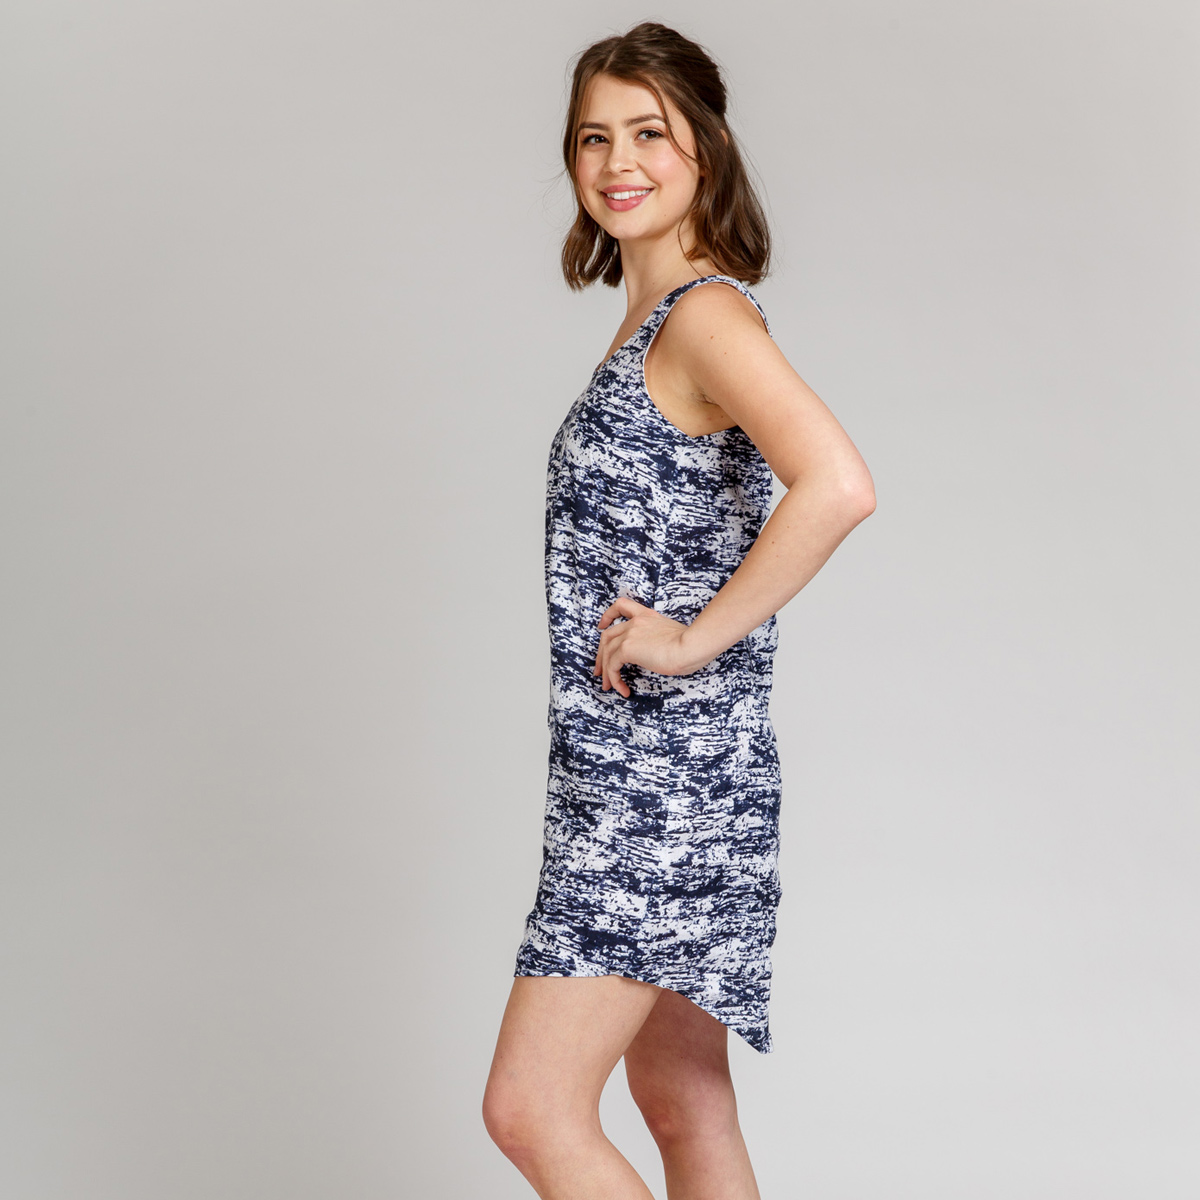 Megan Nielsen Eucalypt woven dress and tank pattern now in sizes 0-20 and curve 14-30